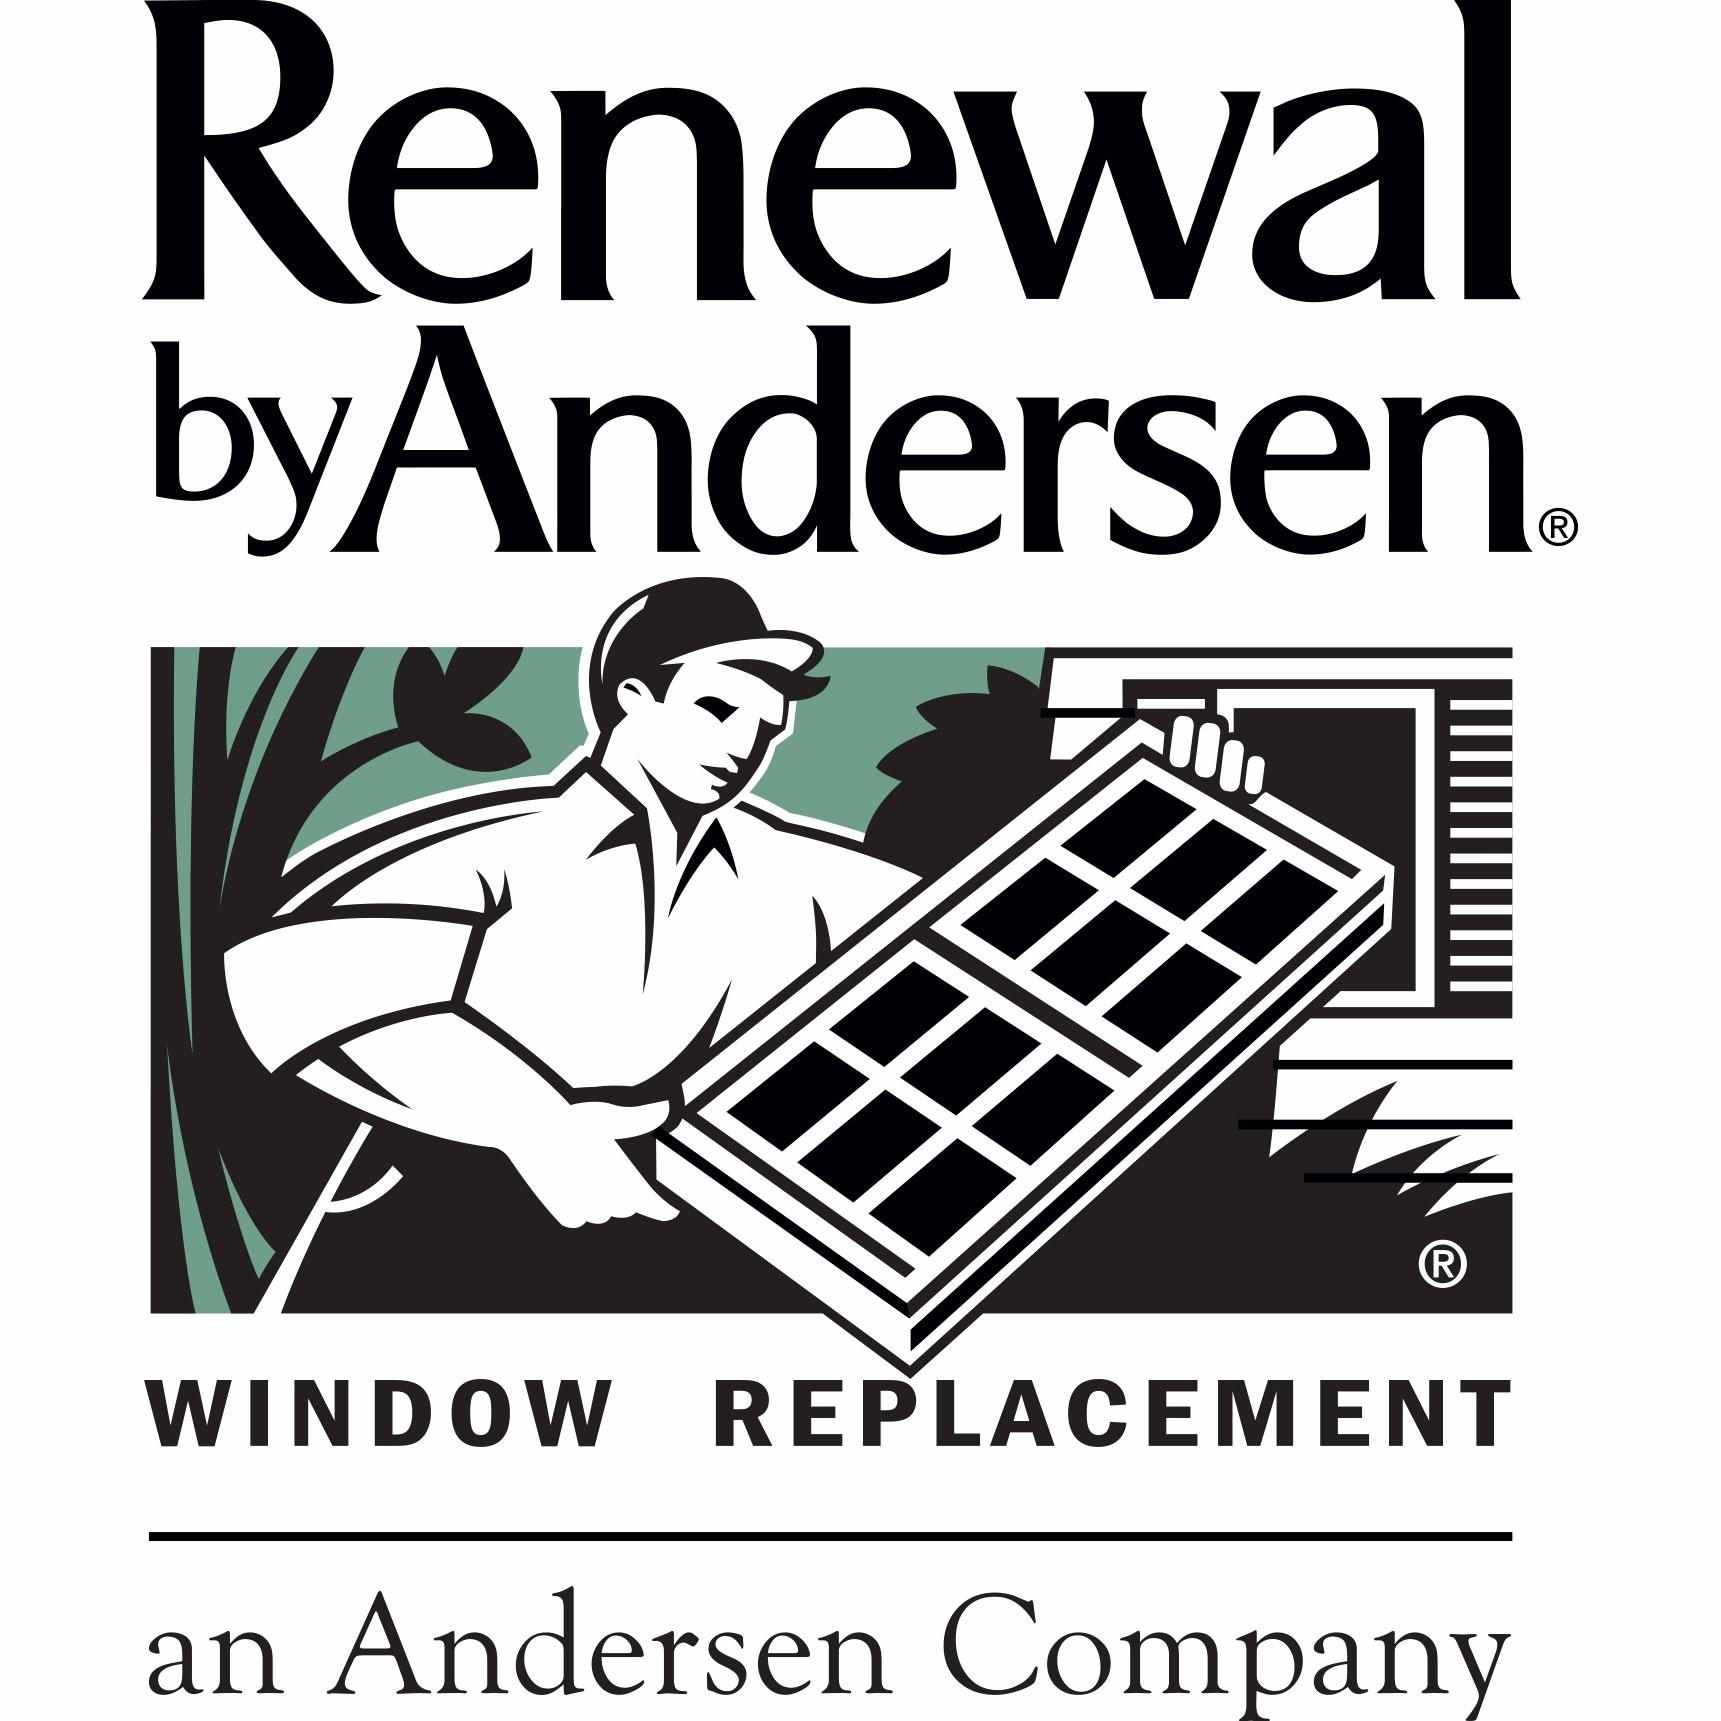 Renewal by Andersen of North & Central Alabama